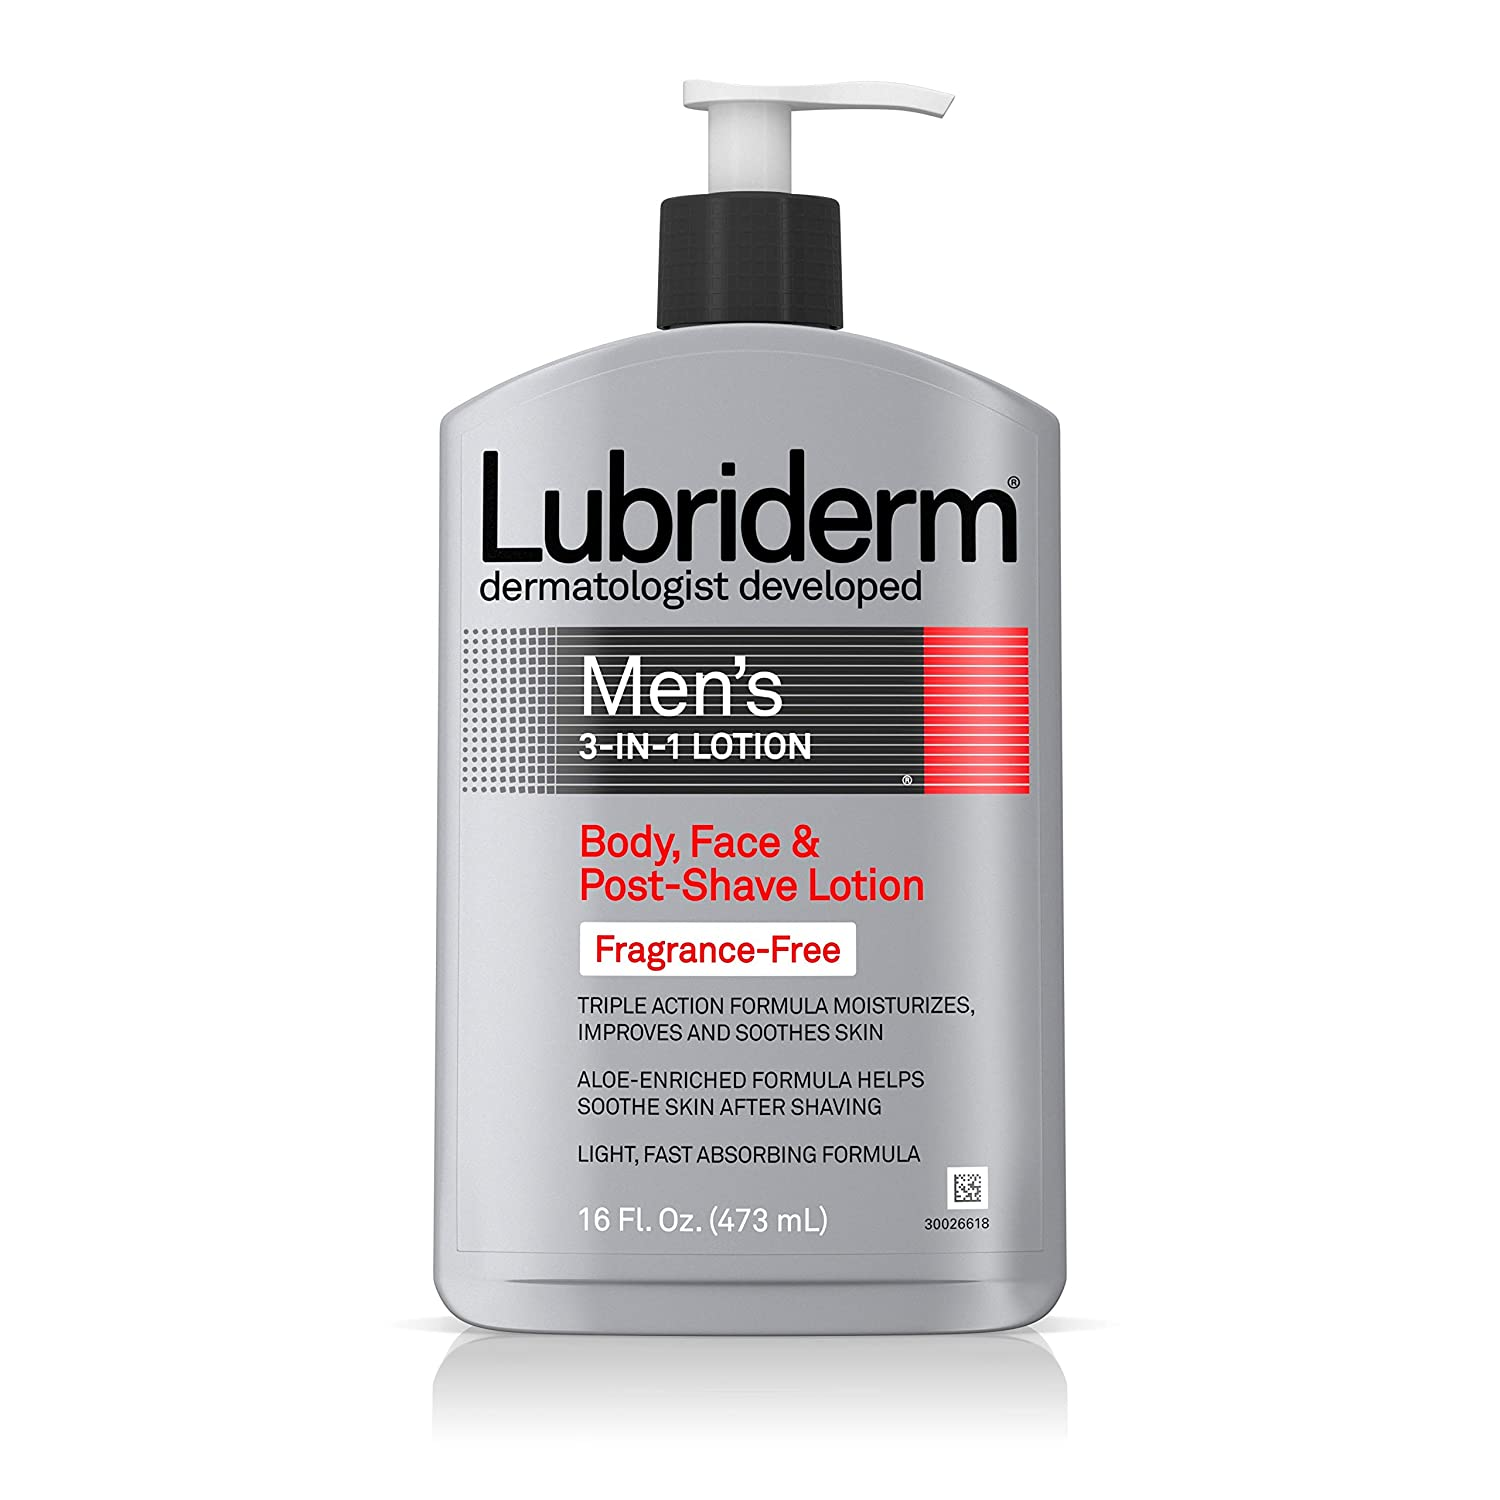 Lubriderm Men's 3-In-1 Unscented Lotion Enriched with Soothing Aloe for Body and Face, Non-Greasy Post Shave Moisturizer, Fragrance-Free, 16 fl. oz